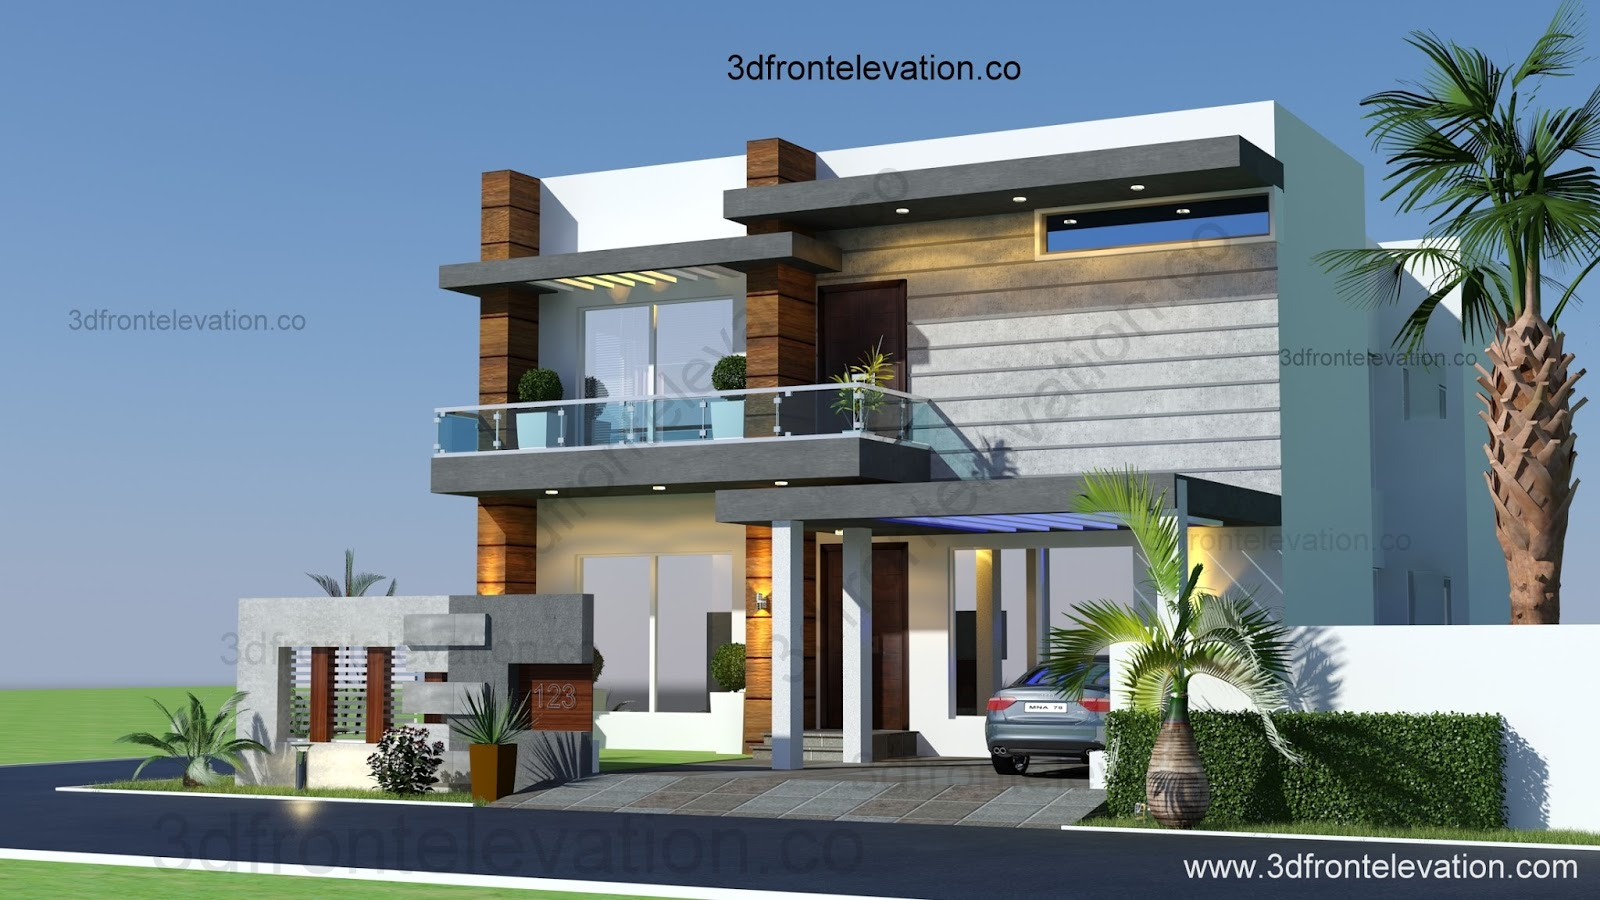 5 Marla Front Elevation Designs : D front elevation marla houses design islamabad with pictures